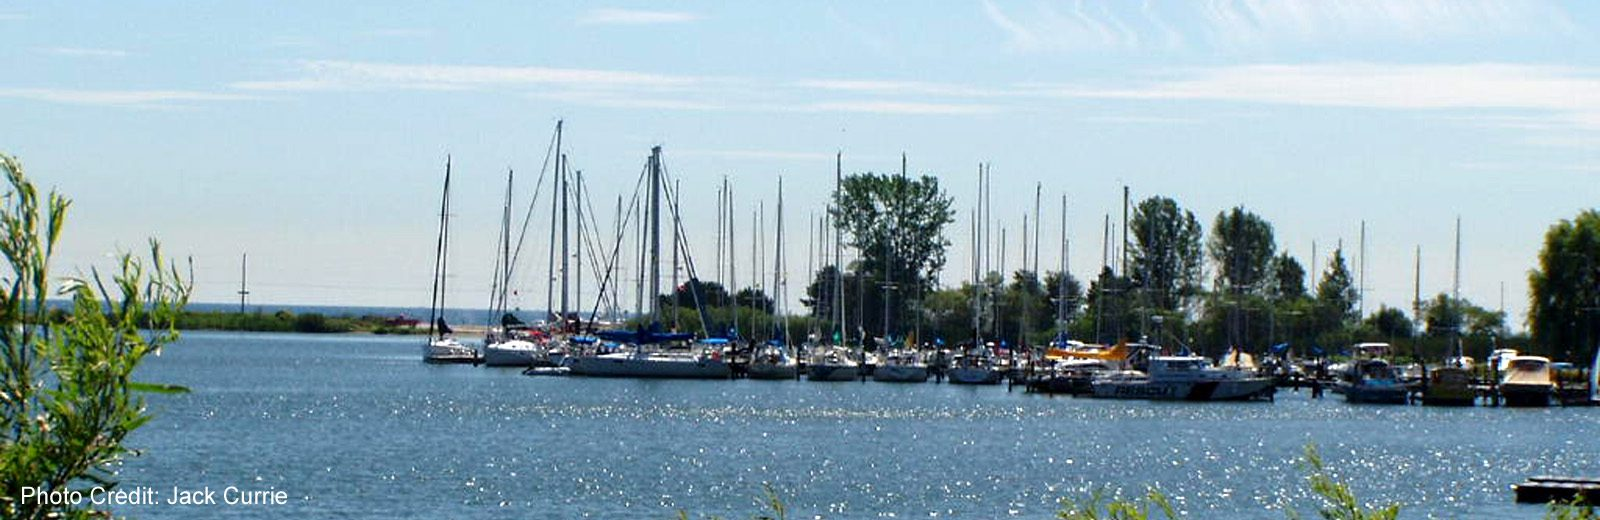 Pickering - Frenchmans Bay Marina -sliver (Jack Currie)